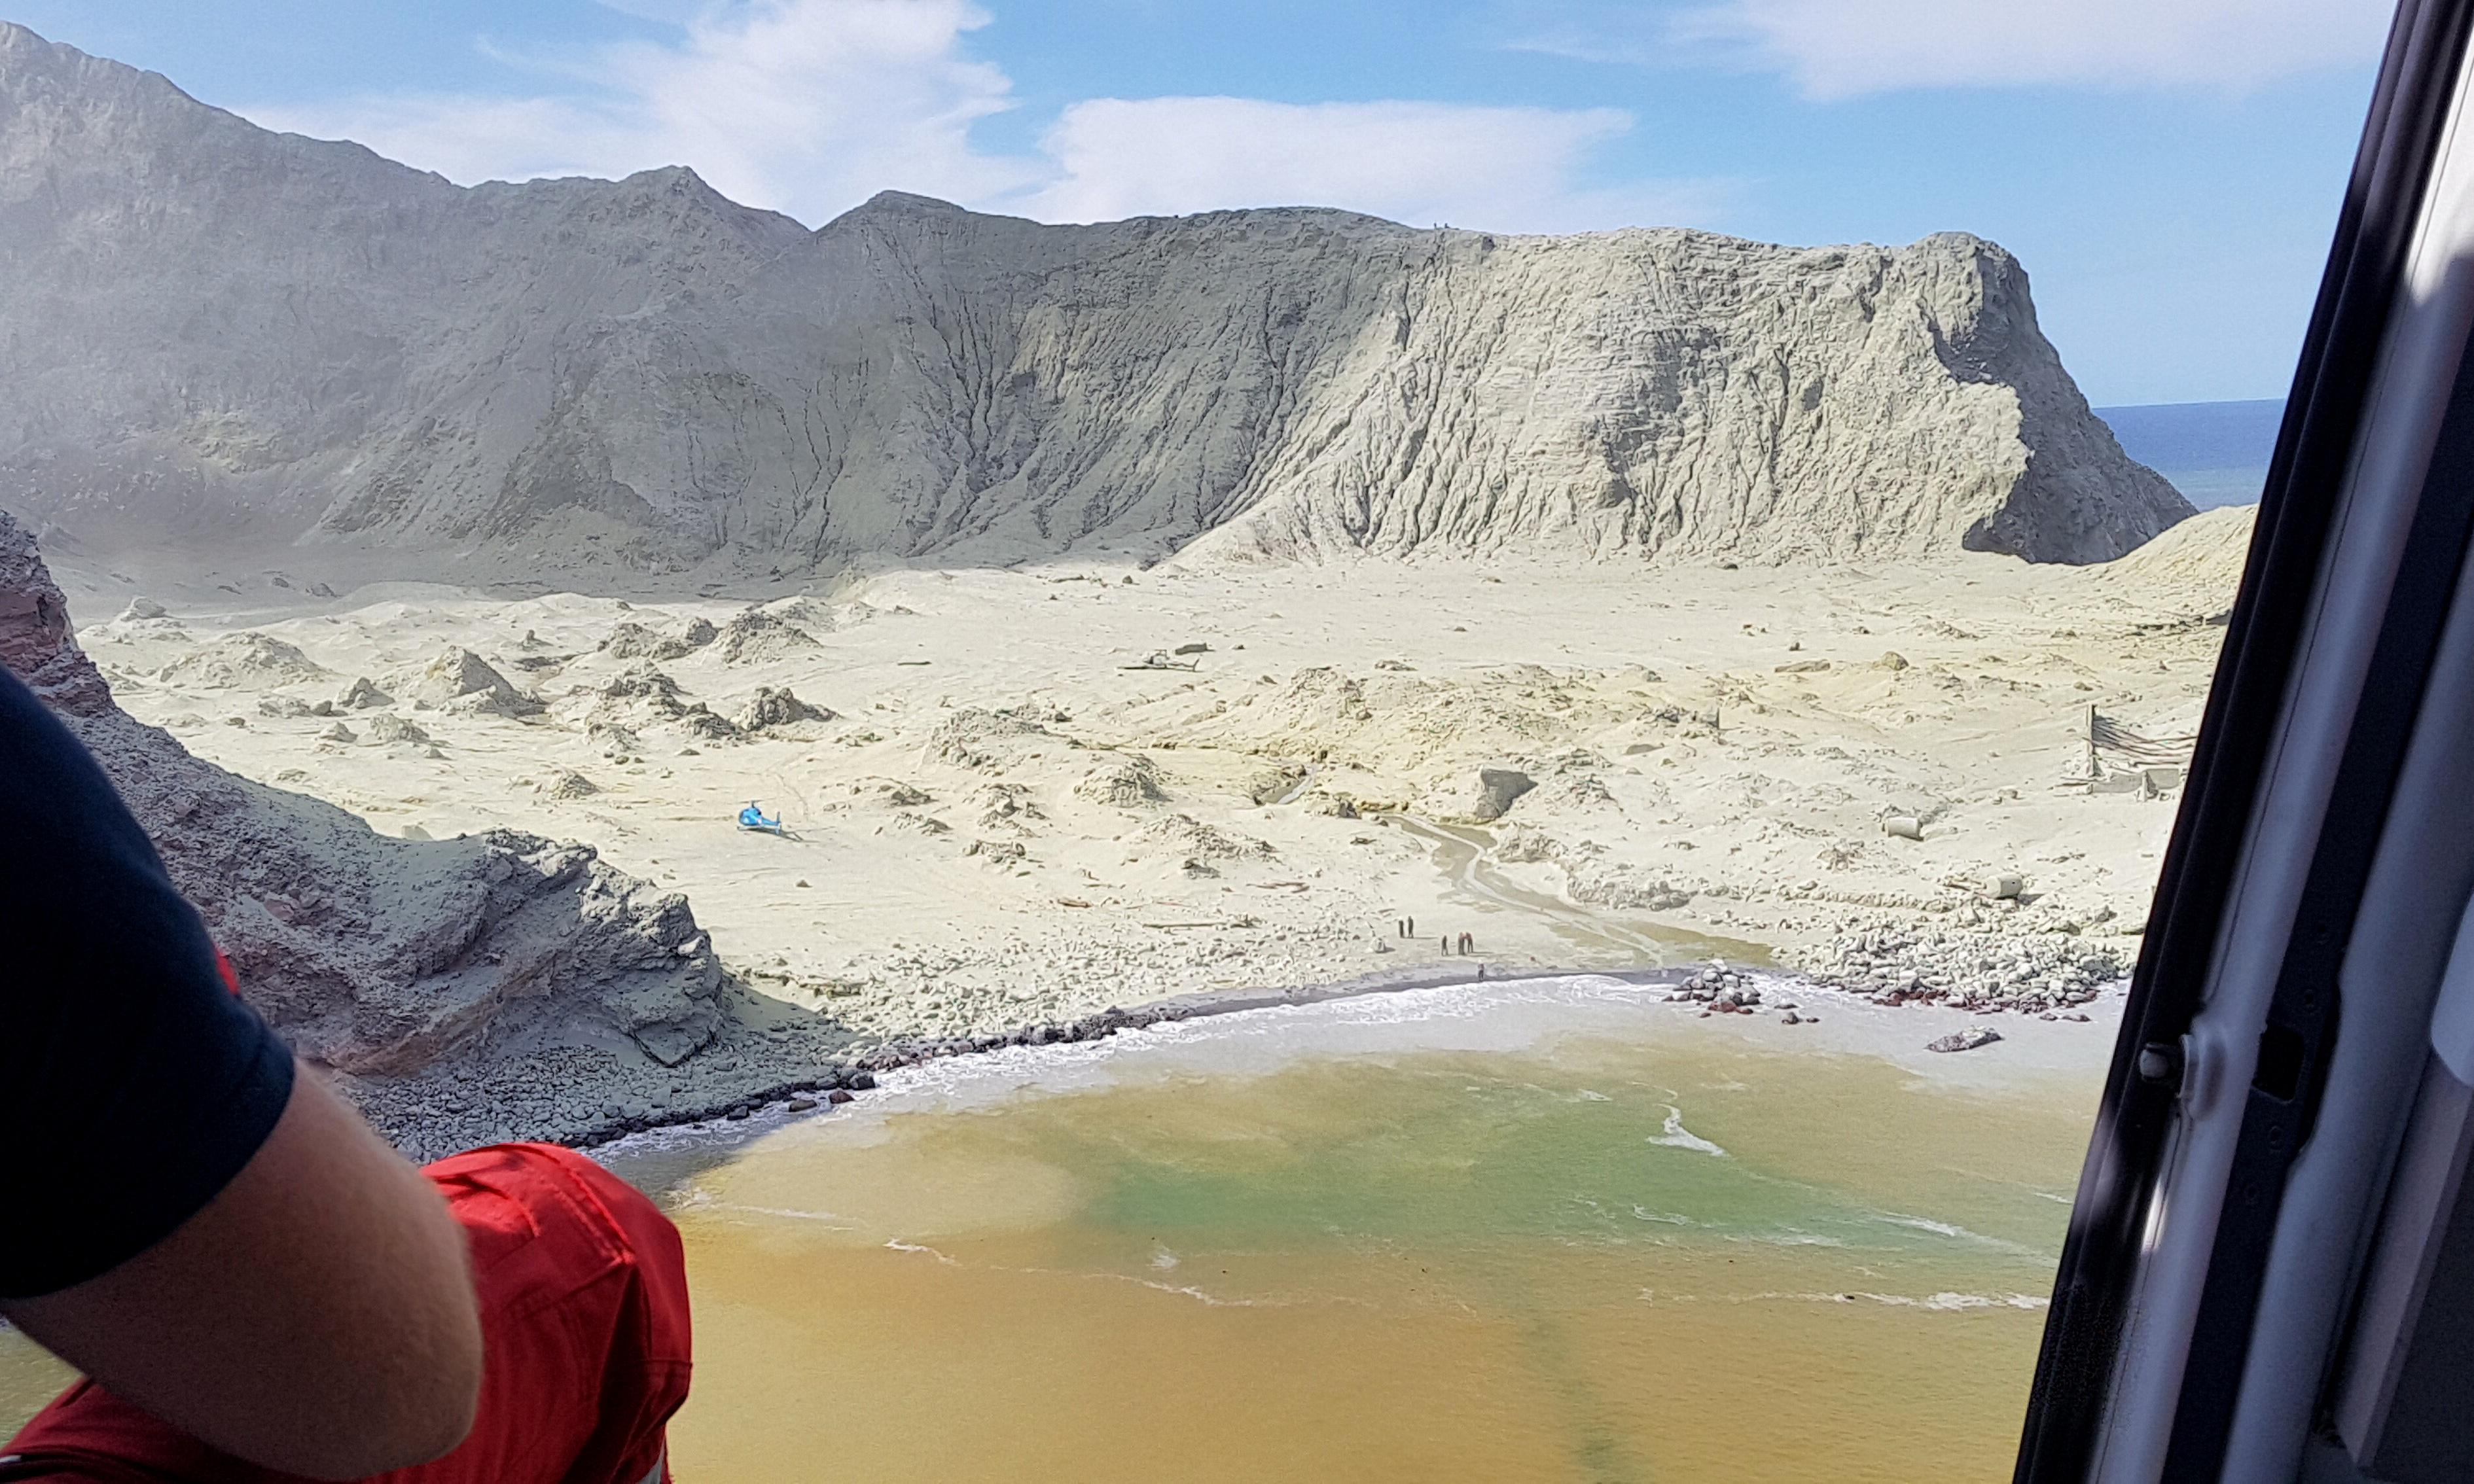 New Zealand helicopter pilot describes horror of volcano rescue